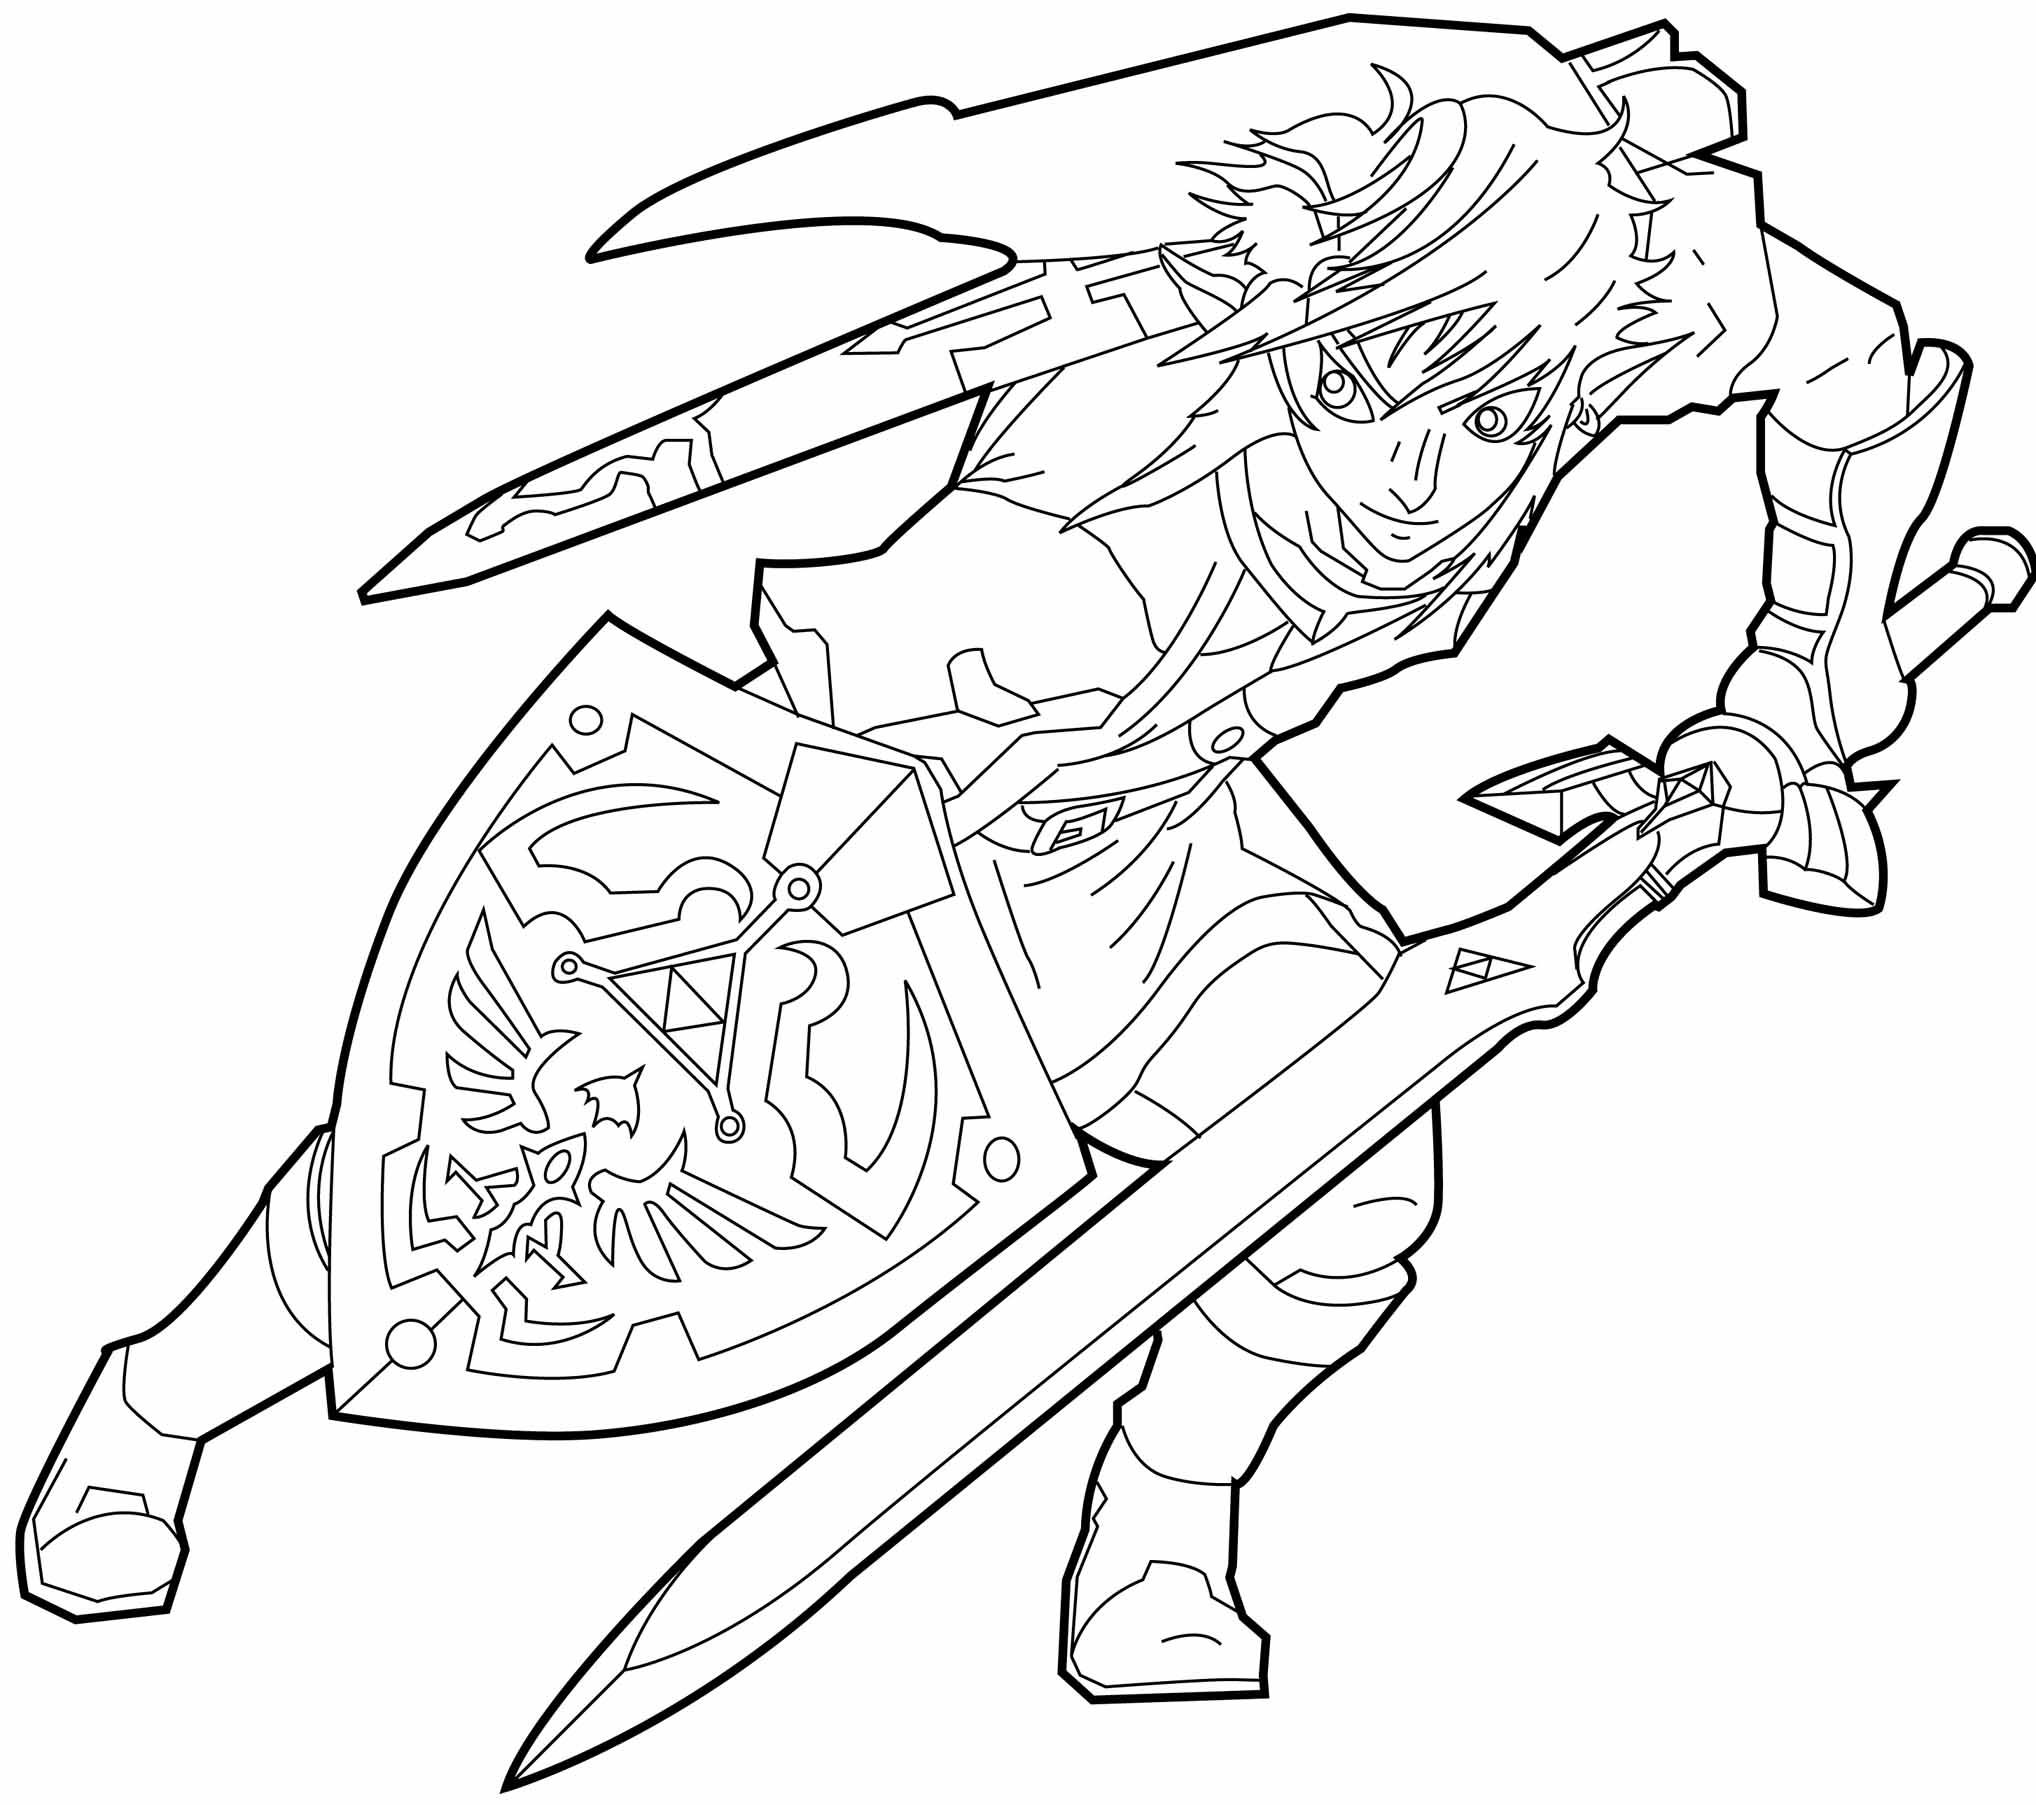 Http Malvina Hubpages Com Hub Free Zelda Coloring Pages